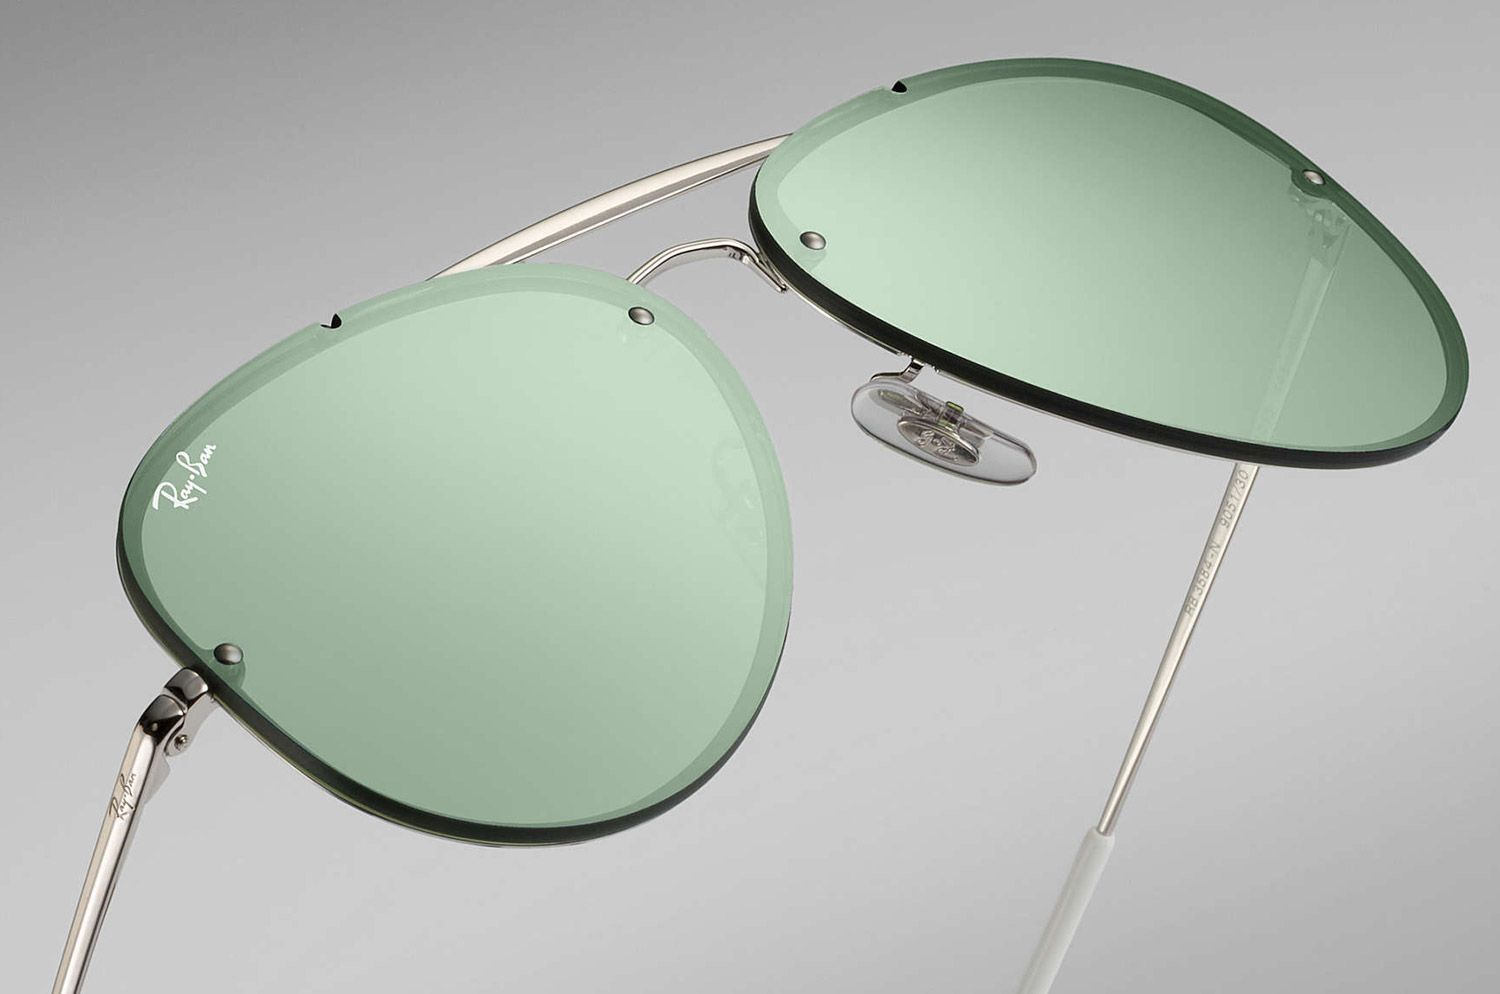 0bdd64aa7e Ray-Ban Aviator Mirror Sunglasses - RB3584N 905130 61-13